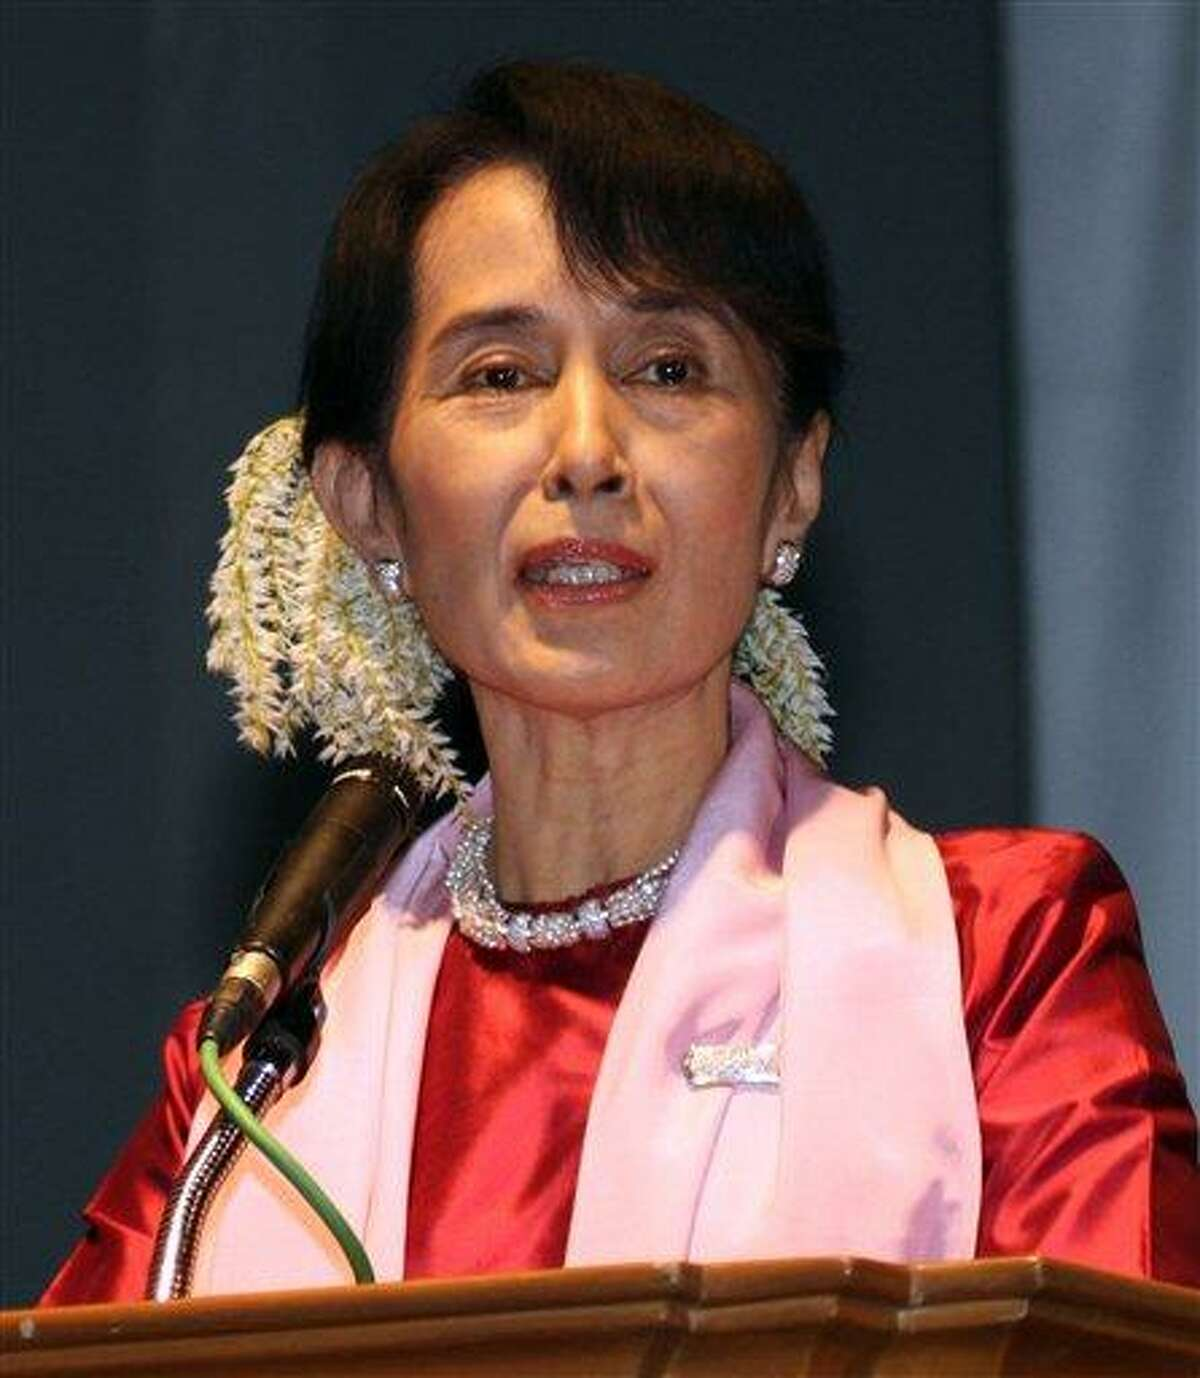 In this Jan. 4, 2012, file photo, Myanmar's pro-democracy leader Aung San Suu Kyi delivers her speech during a short films festival in Yangon, Myanmar. French President Nicolas Sarkozy's office says he has decided to give France's highest award, the Legion of Honor, to her. Associated Press